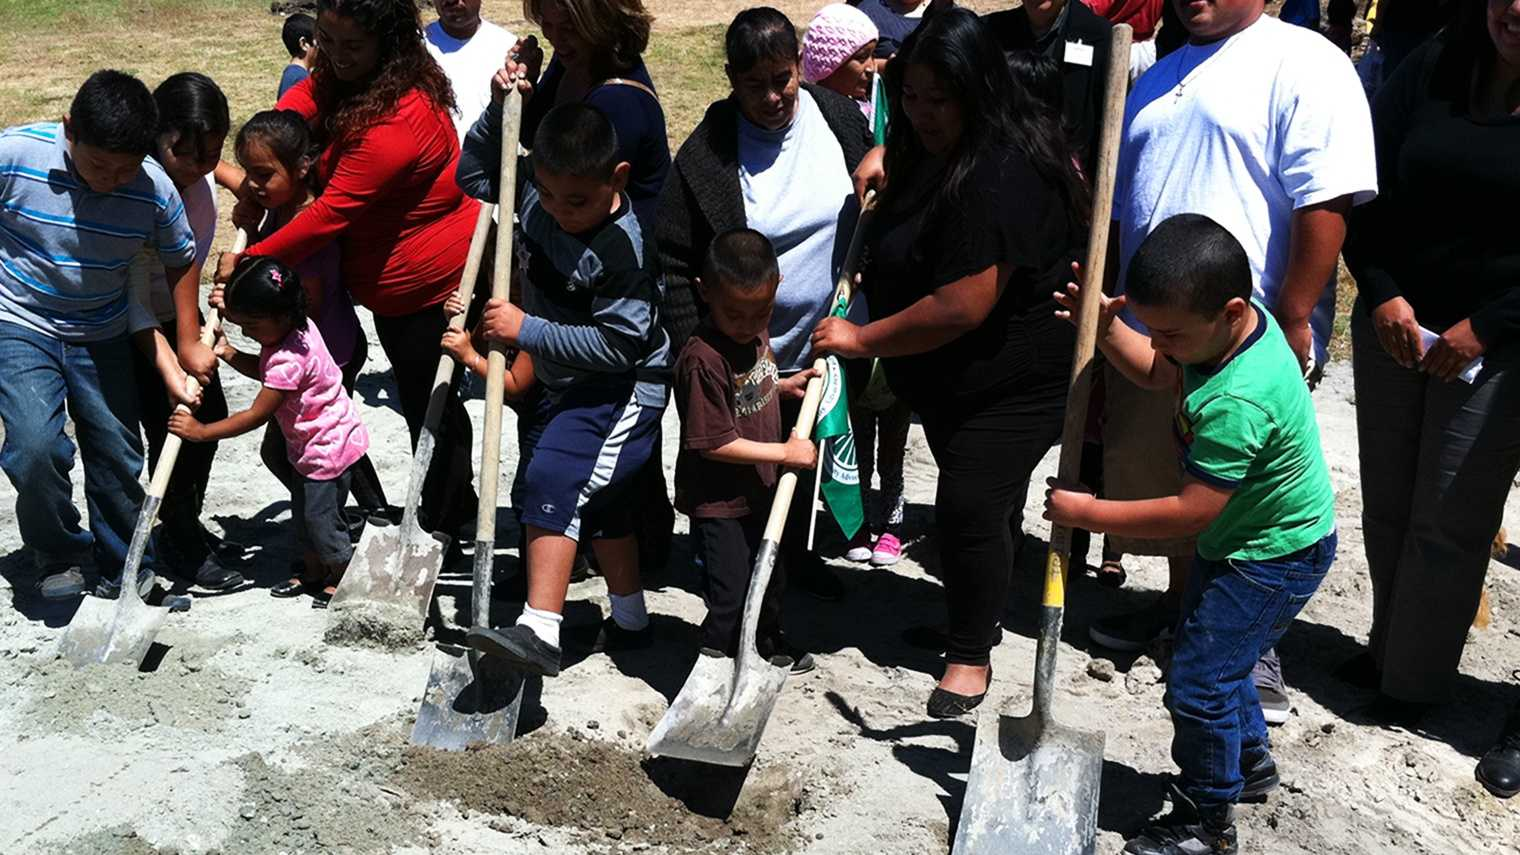 Kids break ground in Acosta Plaza for a new basketball court.  (Aug. 14, 2014)